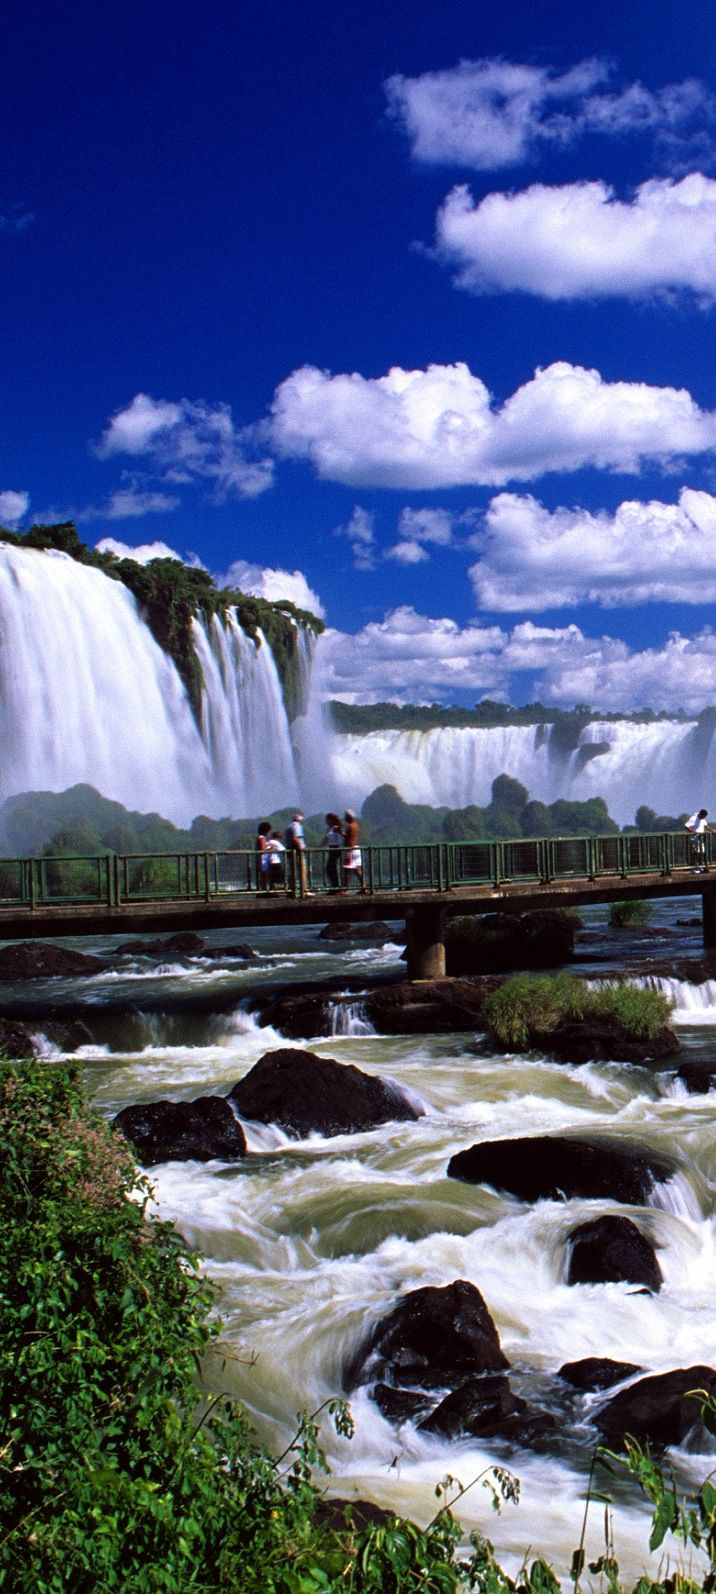 Iguazu Falls ~ located on the border of the Brazilian state of Paraná and the Argentine province of Misiones.